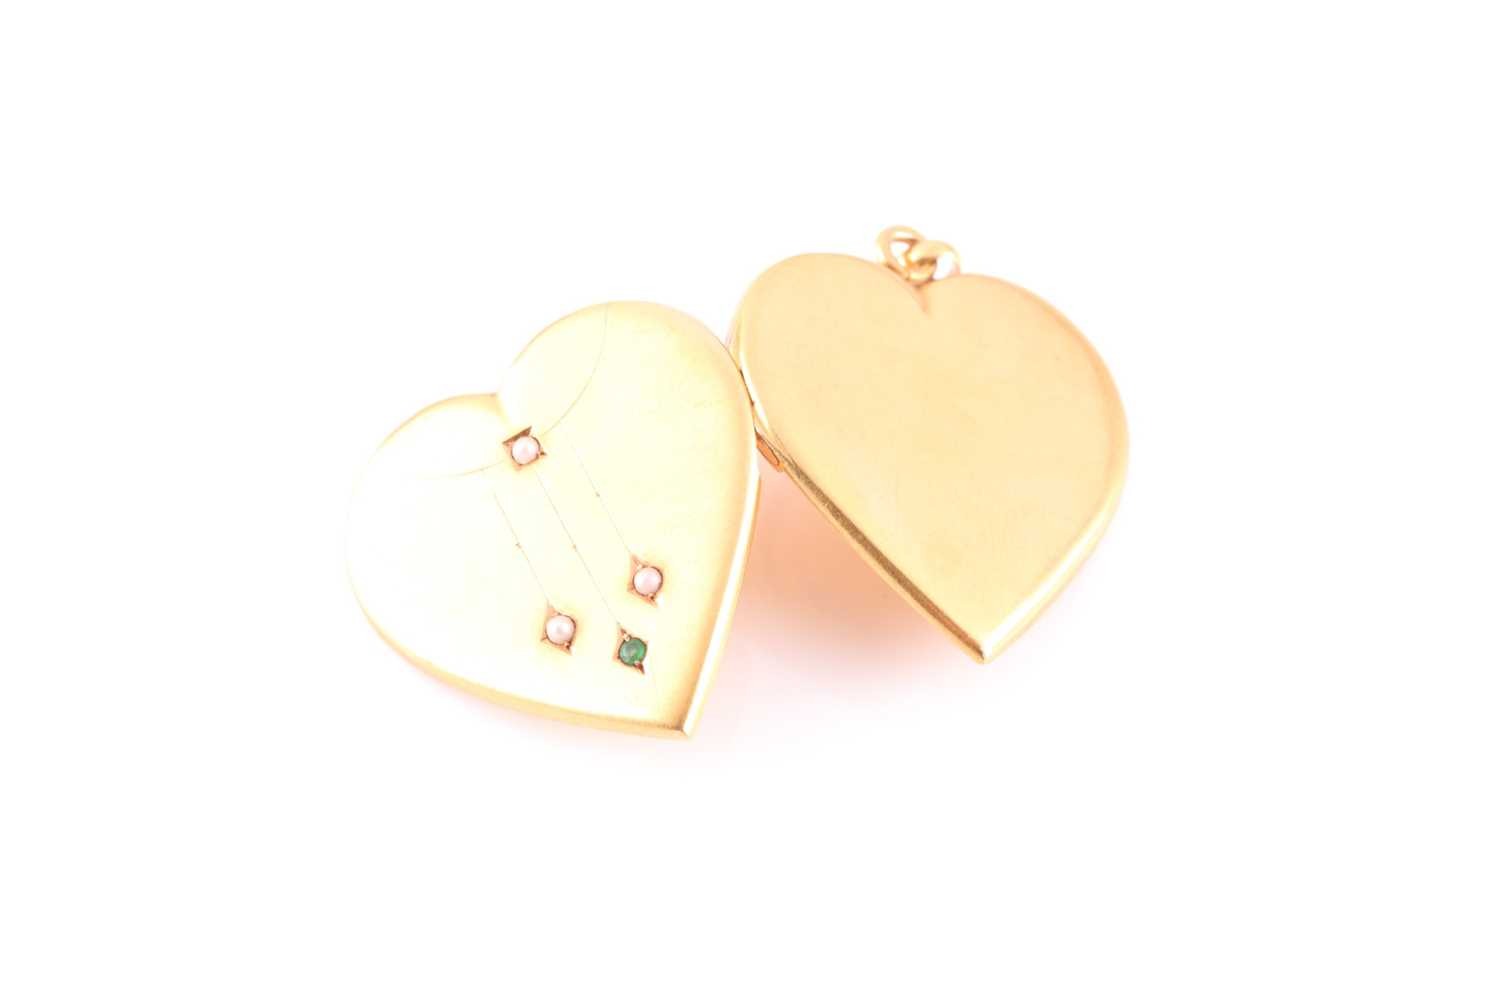 An early 20th century yellow metal heart-shaped locket pendant, the hinged front inset with small - Image 3 of 5